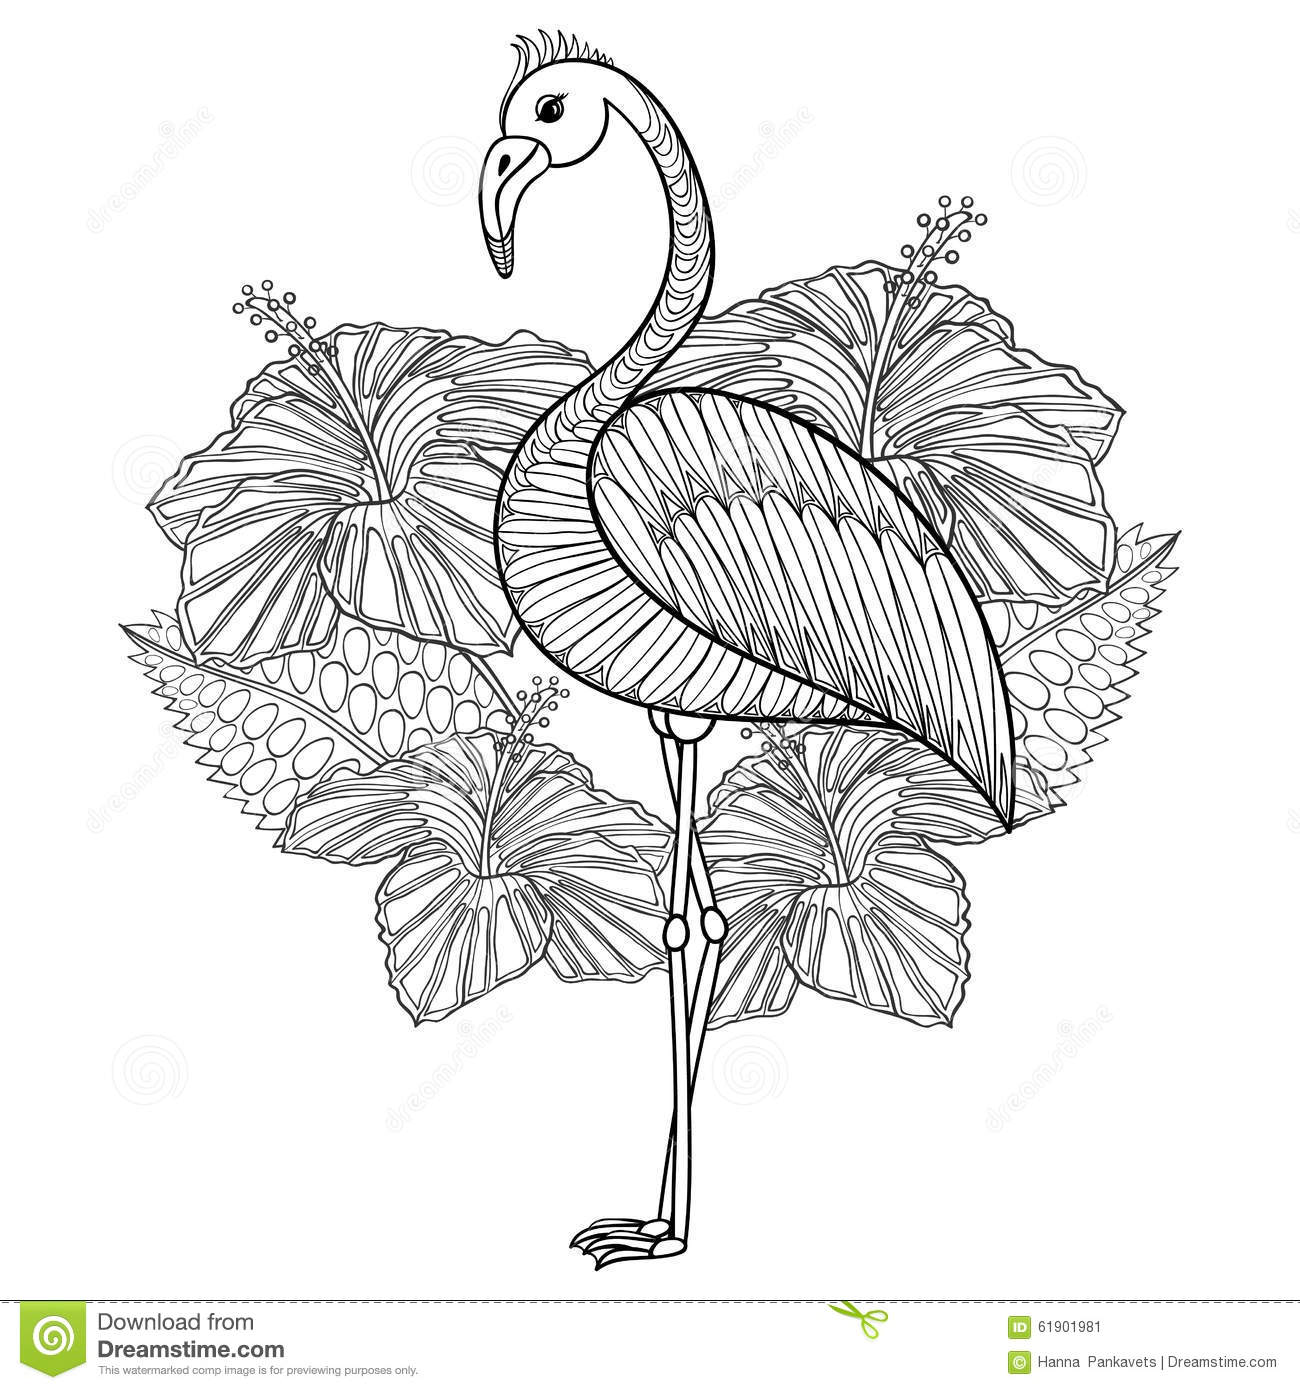 Coloring Page With Flamingo In